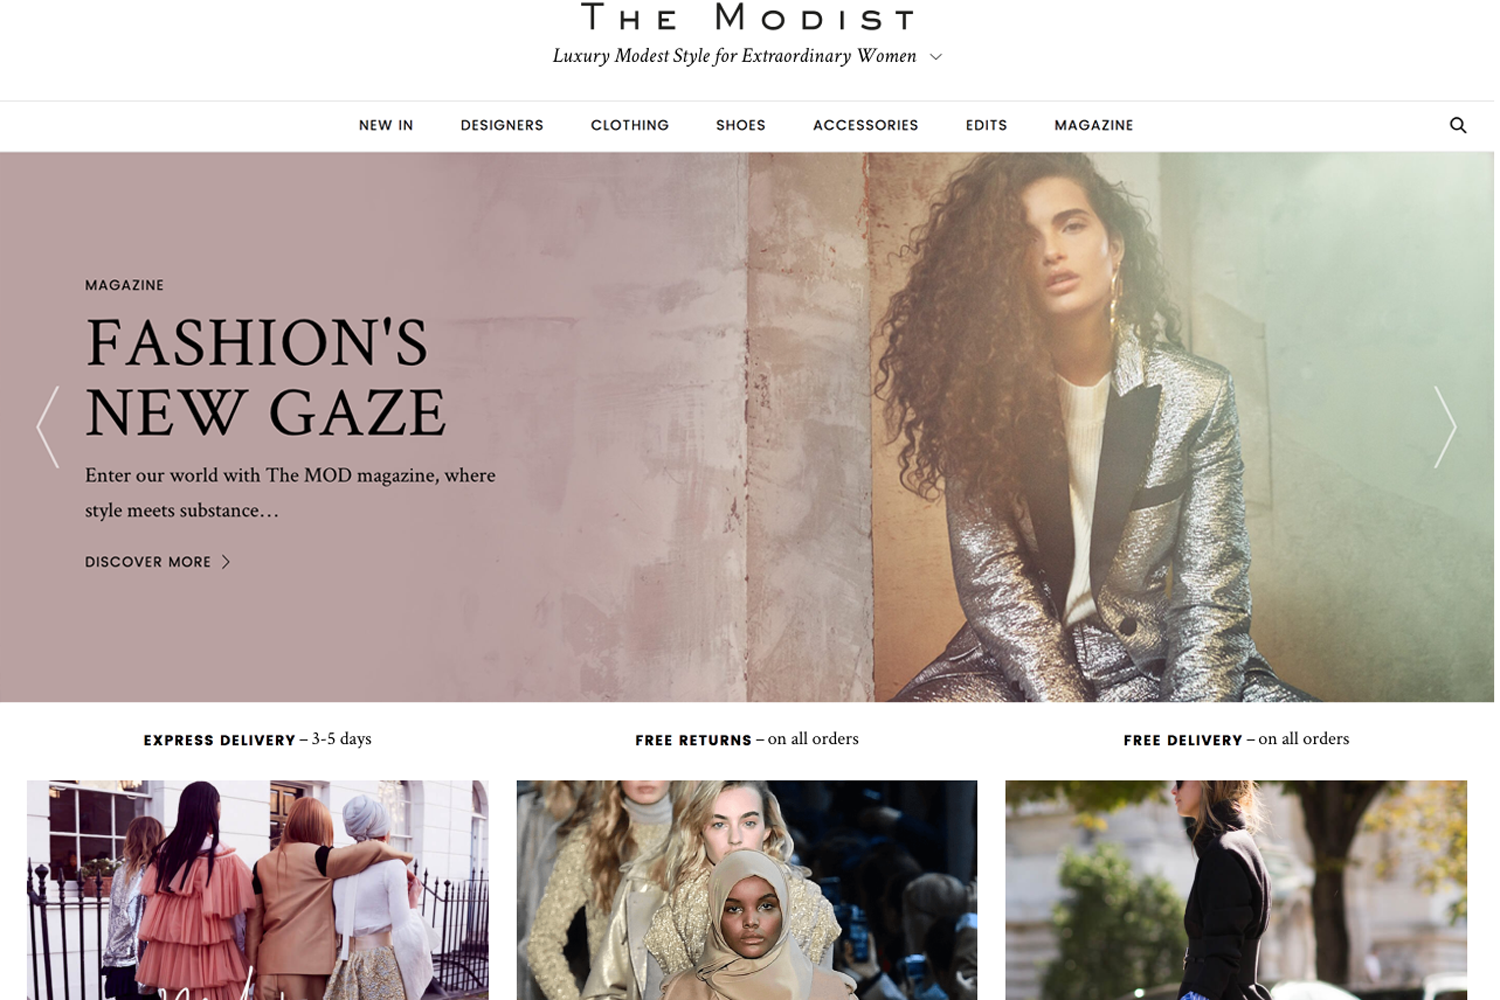 A fashion website - The Team Say The Site Is Dedicated To Women Who Dress To Express Their Style In A Contemporary Fashionable Yet Modest Manner